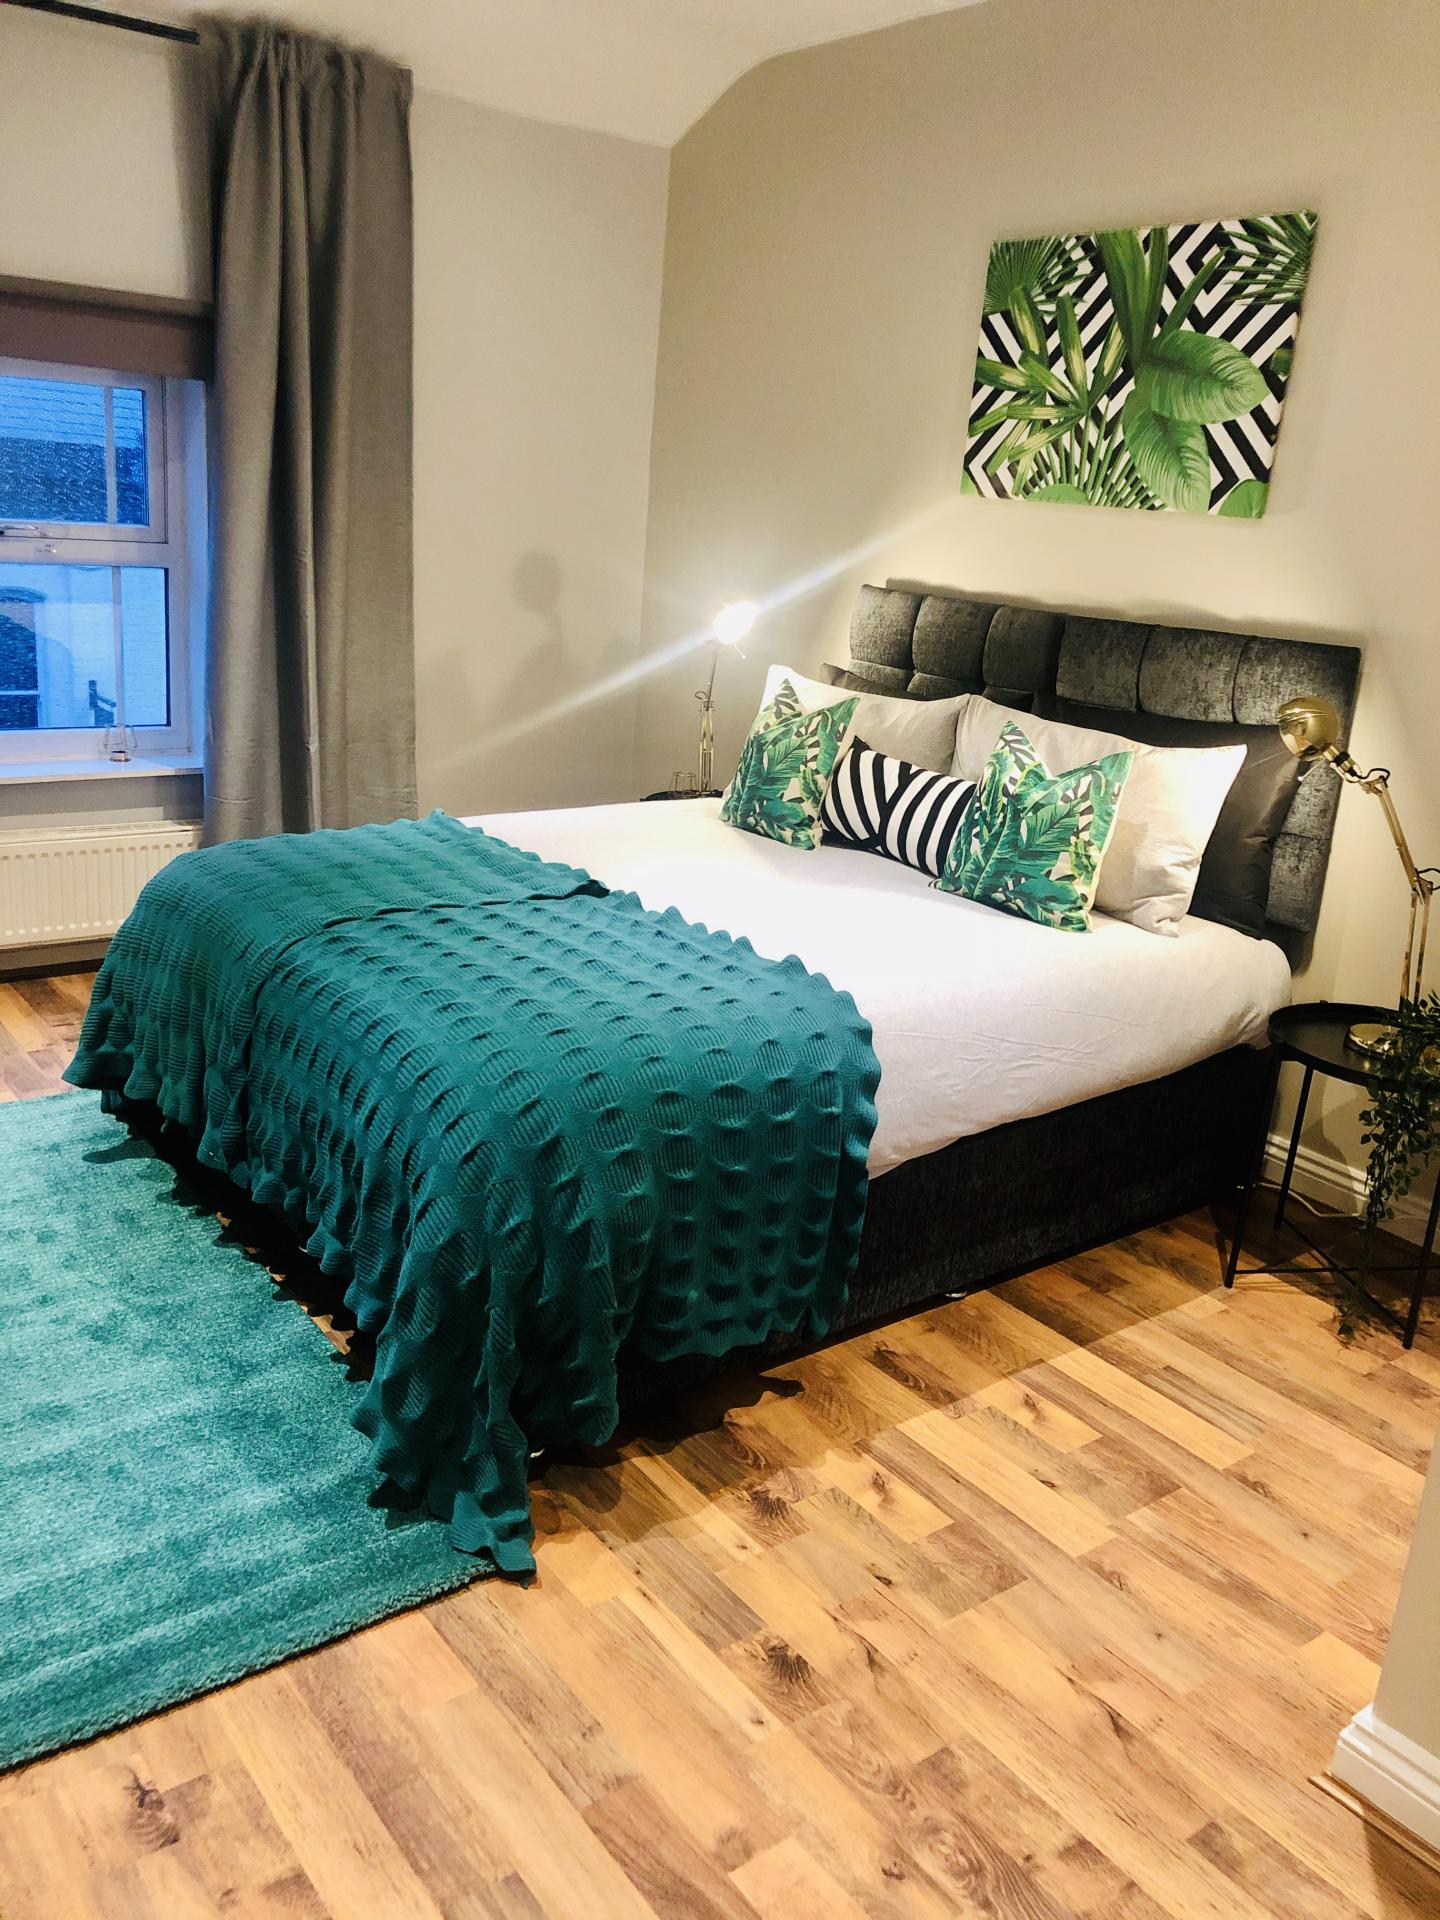 Bed at Glossop Road Apartment, Broomhall, Sheffield - Citybase Apartments